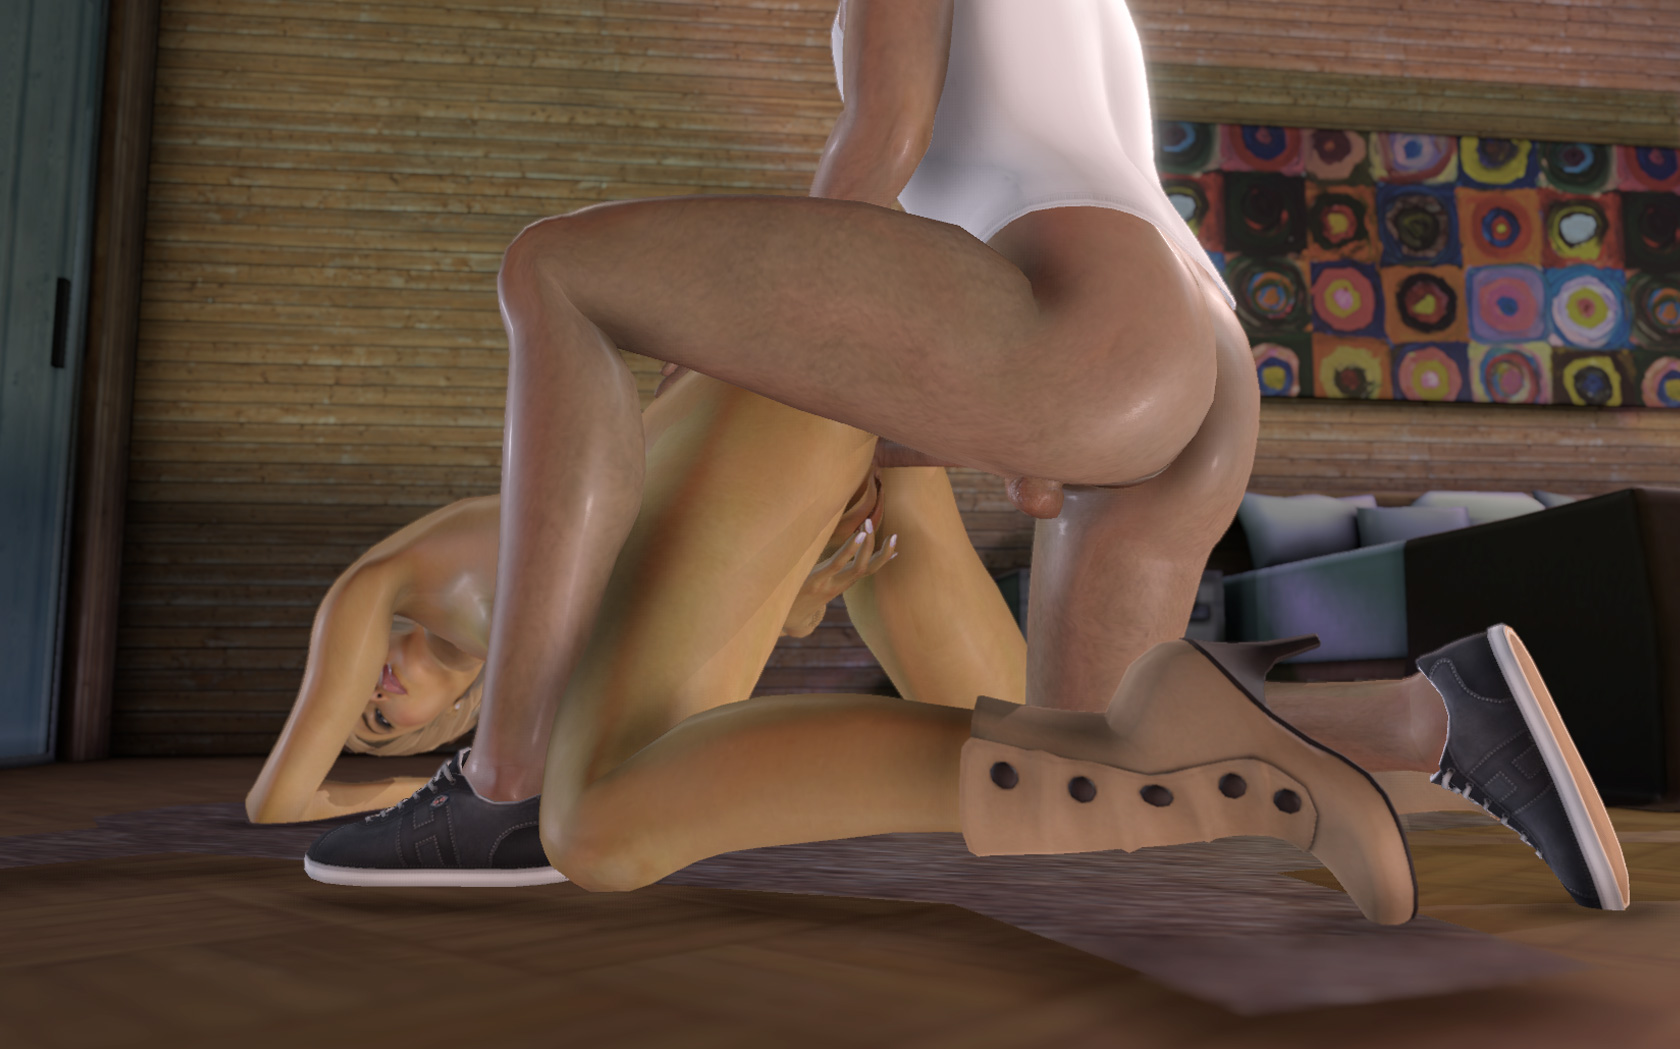 3D Interactive Porn Games 3d sex games - interactive virtual sex simulations - 3d sexvilla